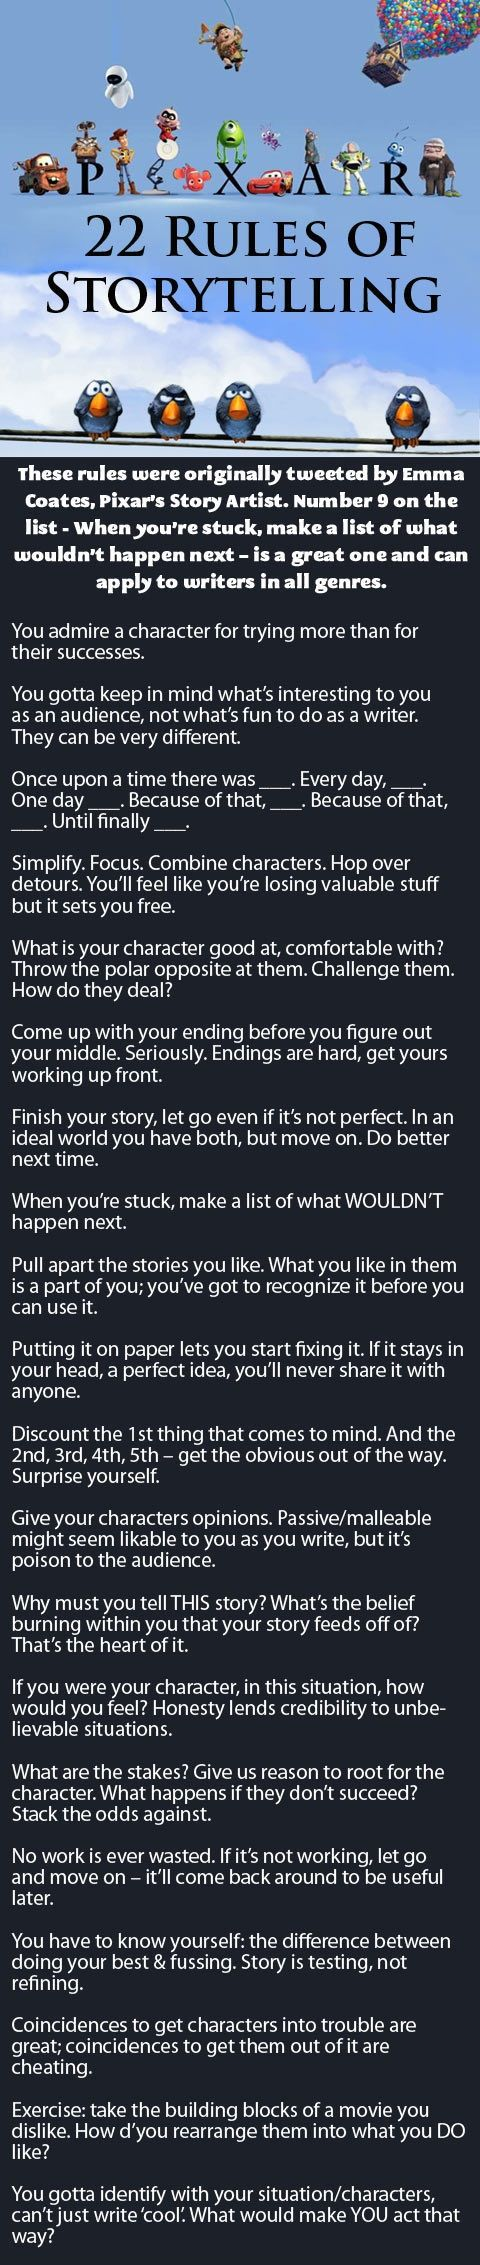 22 rules of storytelling